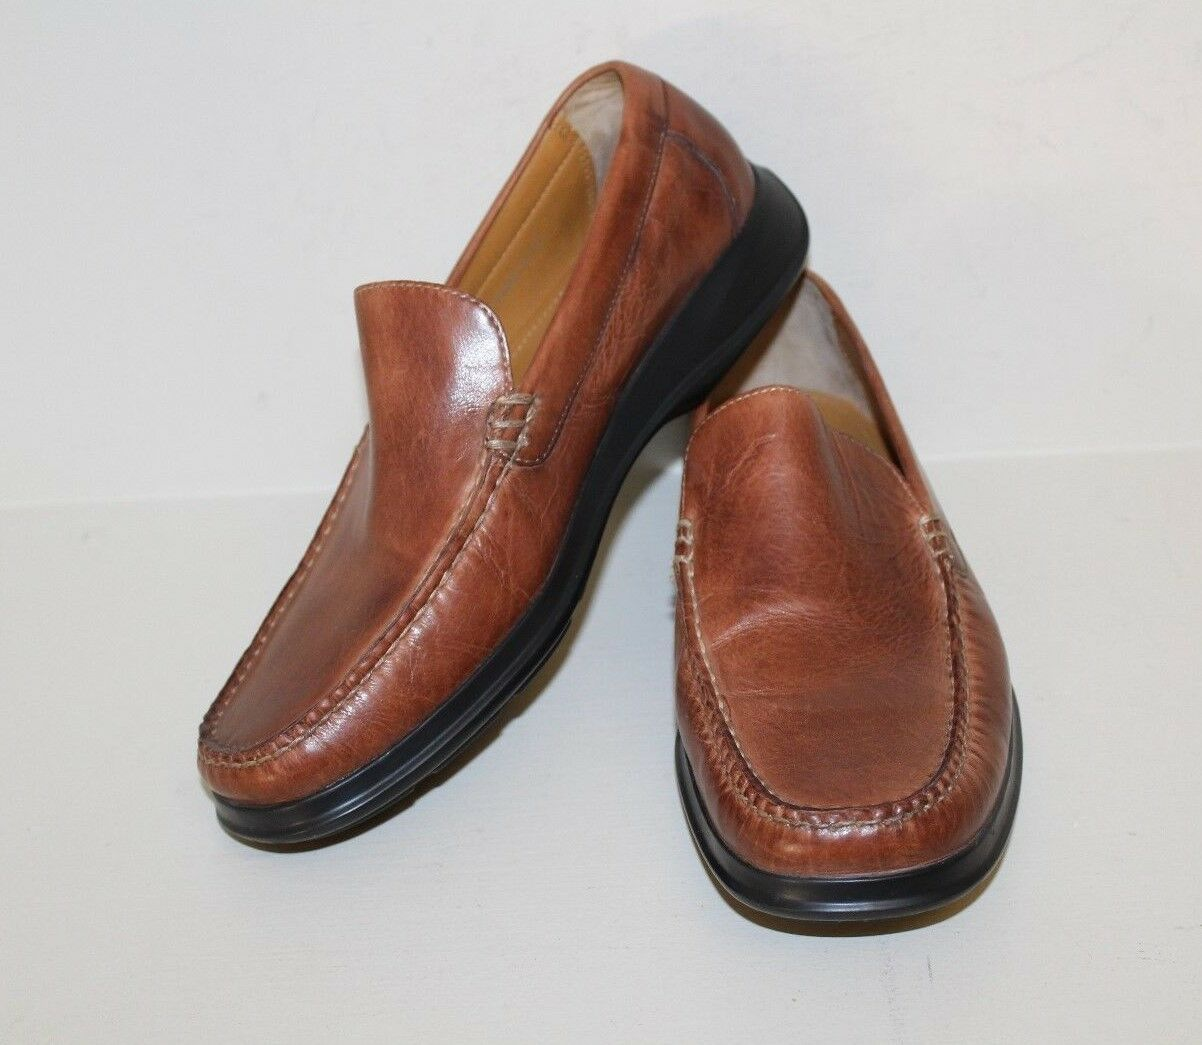 Cole Haan Mens Loafer shoes Size 8.5 M Brown Leather Slip On Moc Toe